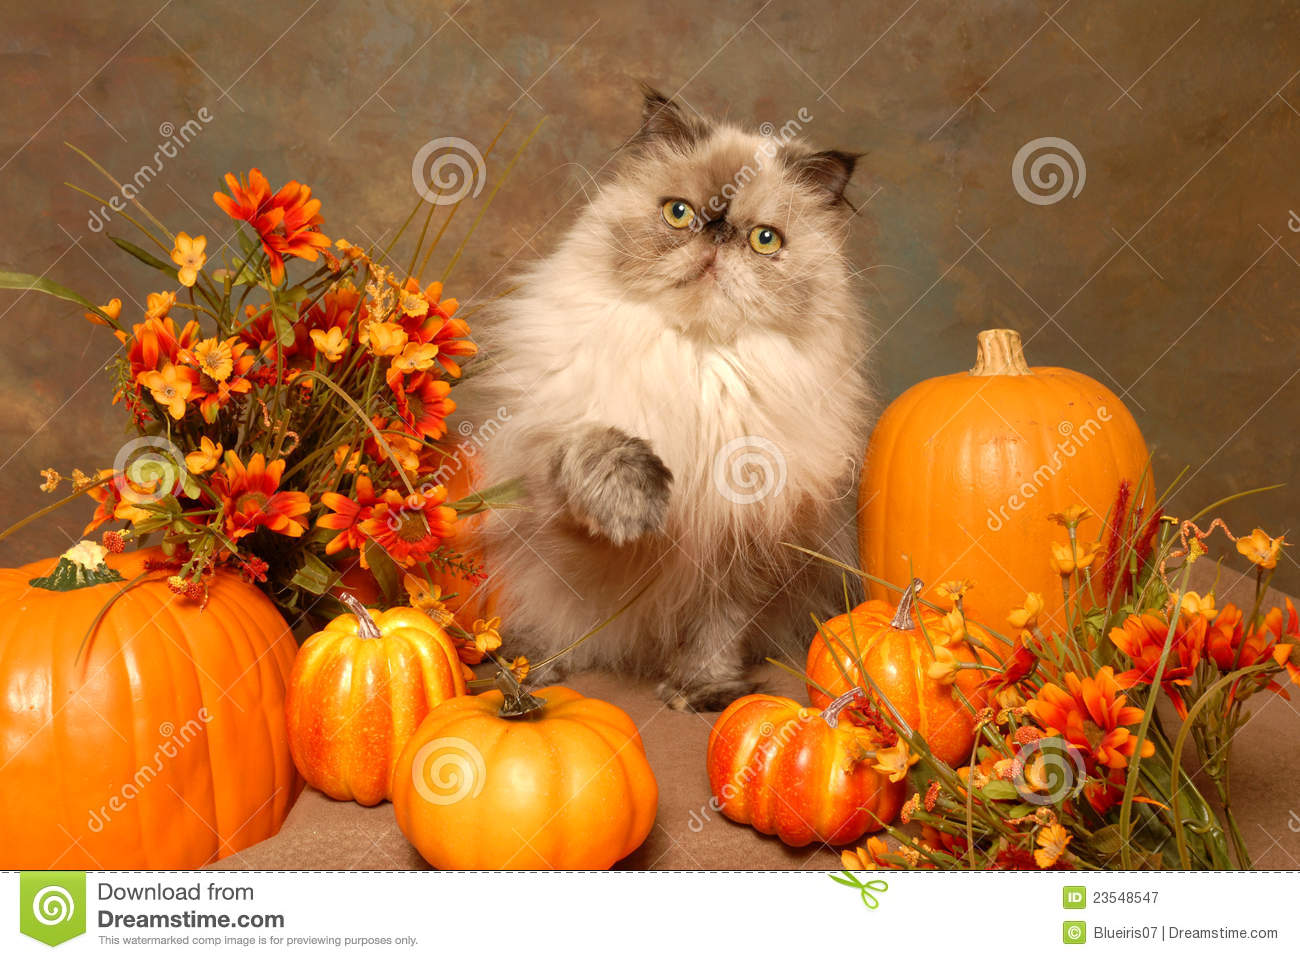 Nove Ber Fall Wallpaper For Computer A Himalayan Cat With Autumn Flowers And Pumkins Stock